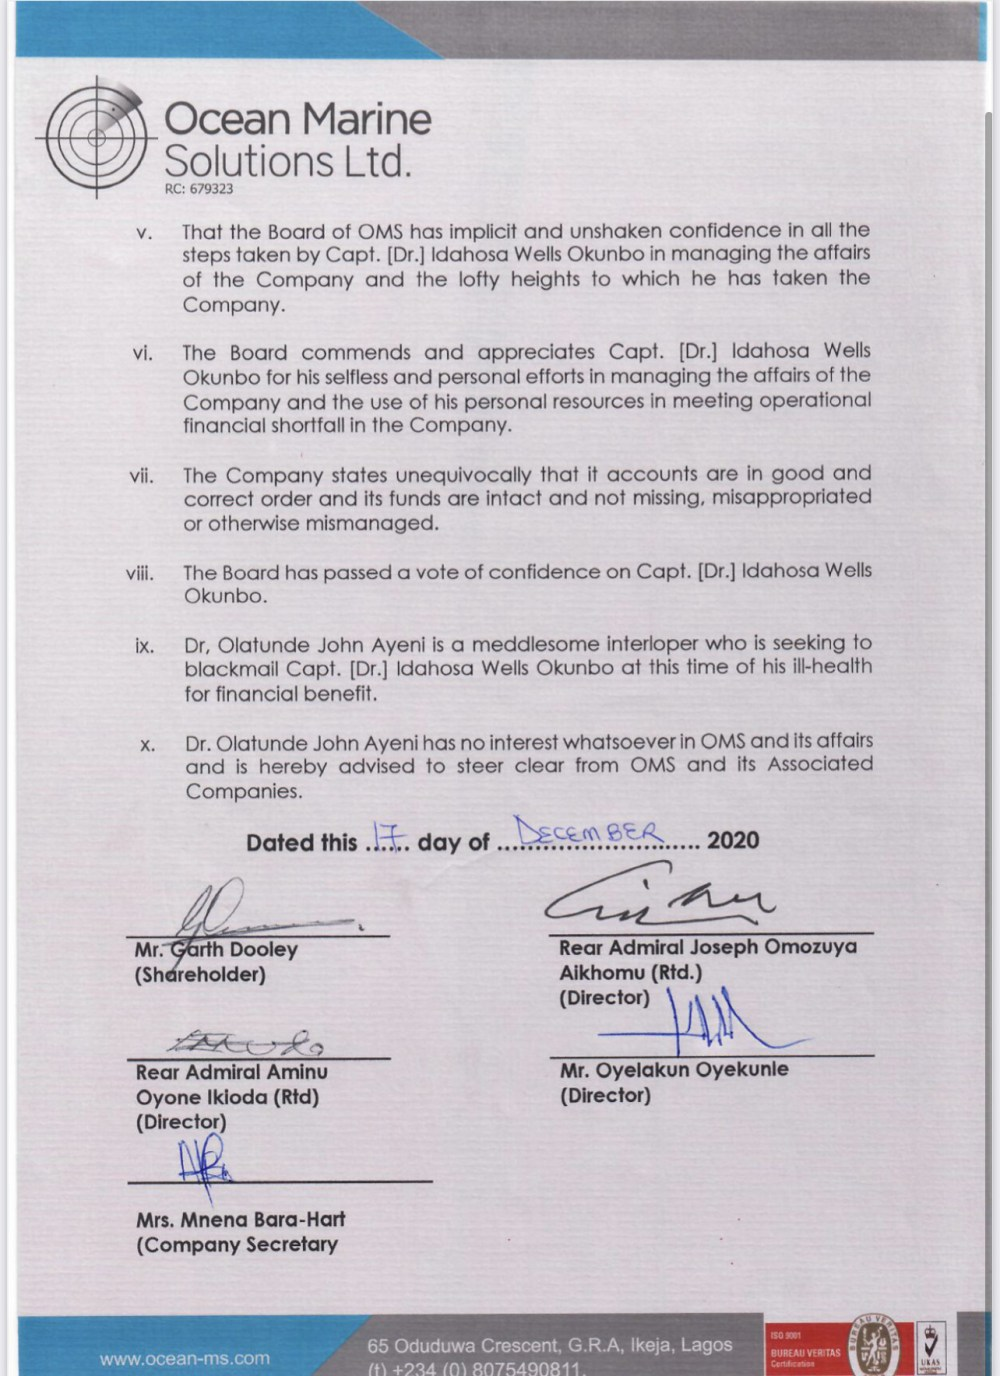 Tunde Ayeni is No Longer a Shareholder or Director at OMS??Management